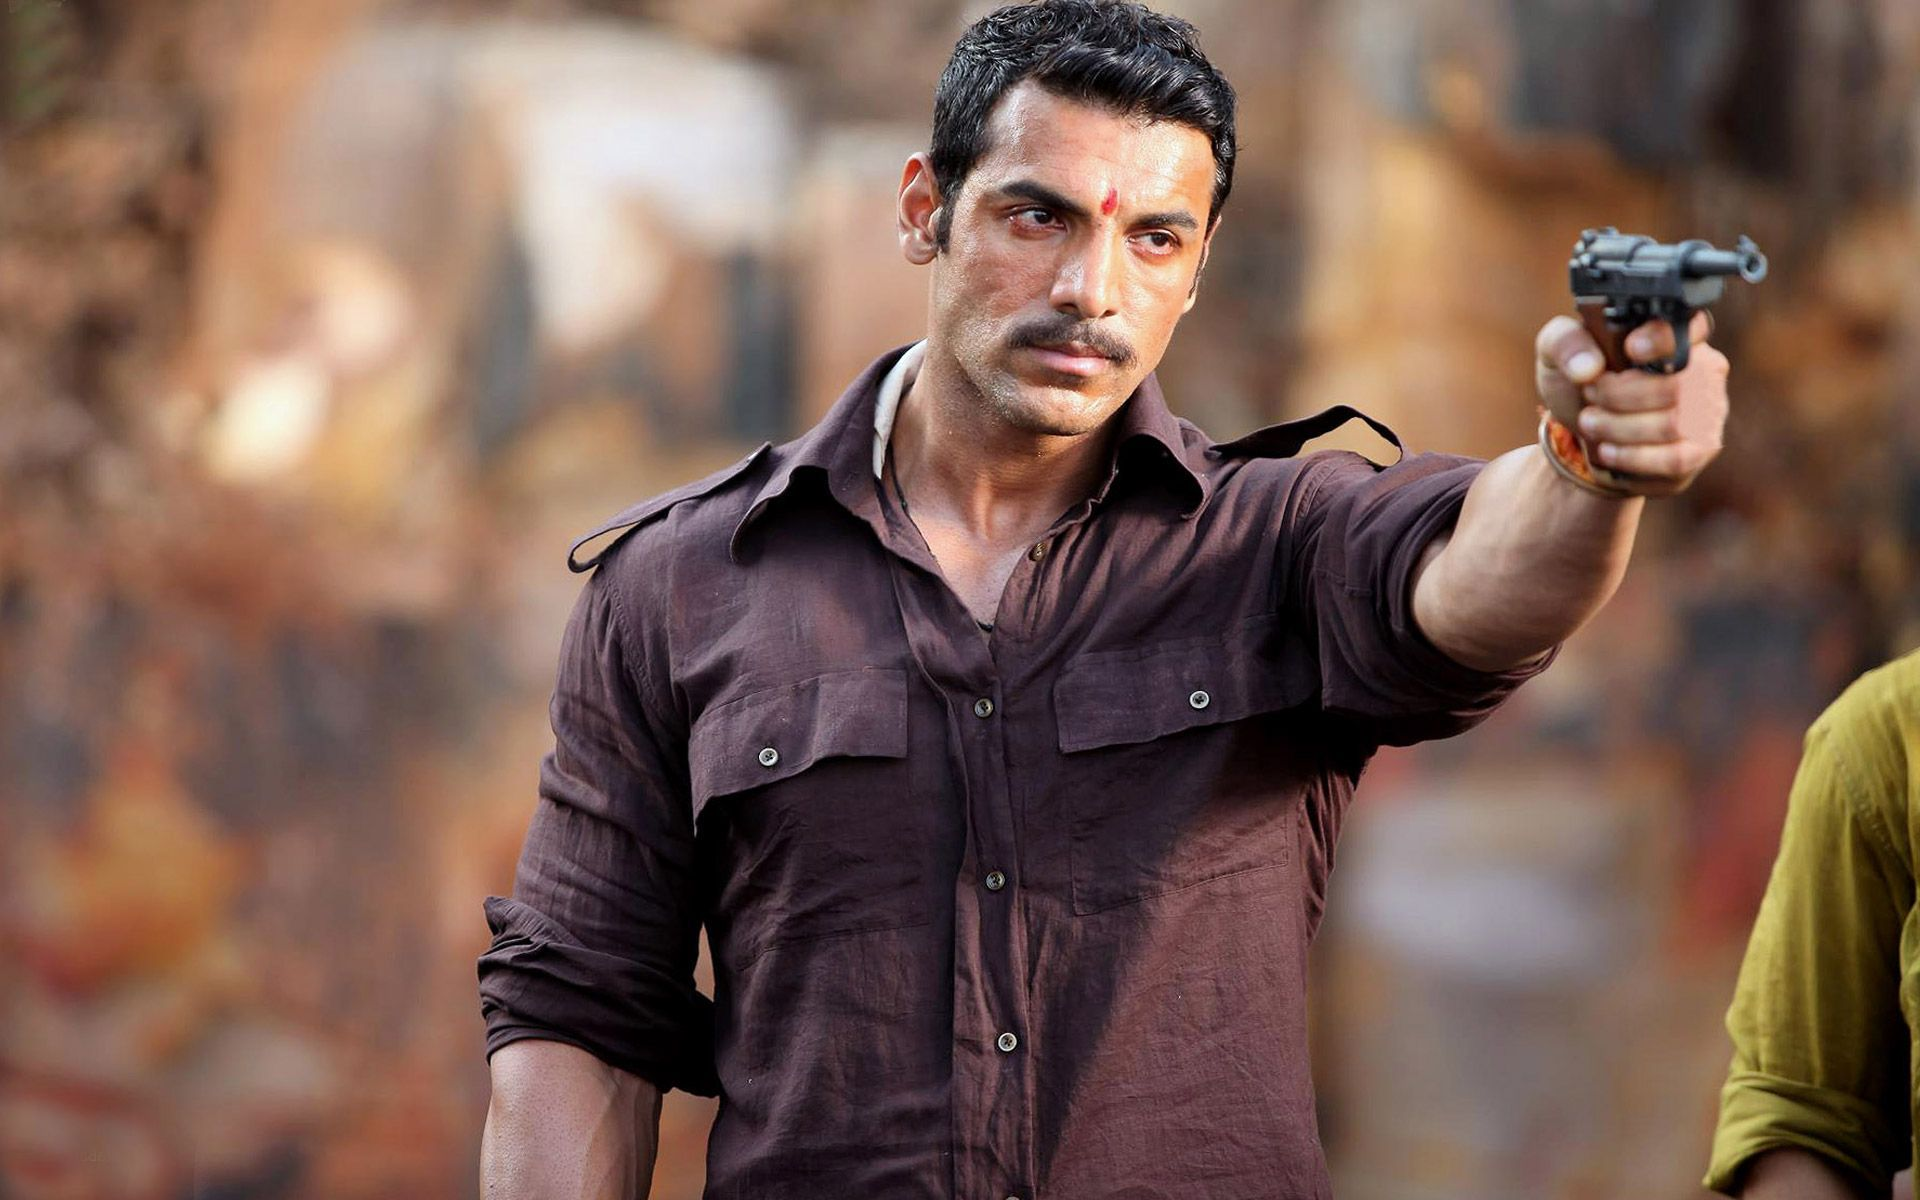 Hd wallpaper john abraham - John Abraham In Shootout At Wadala Hd Bollywood Movies